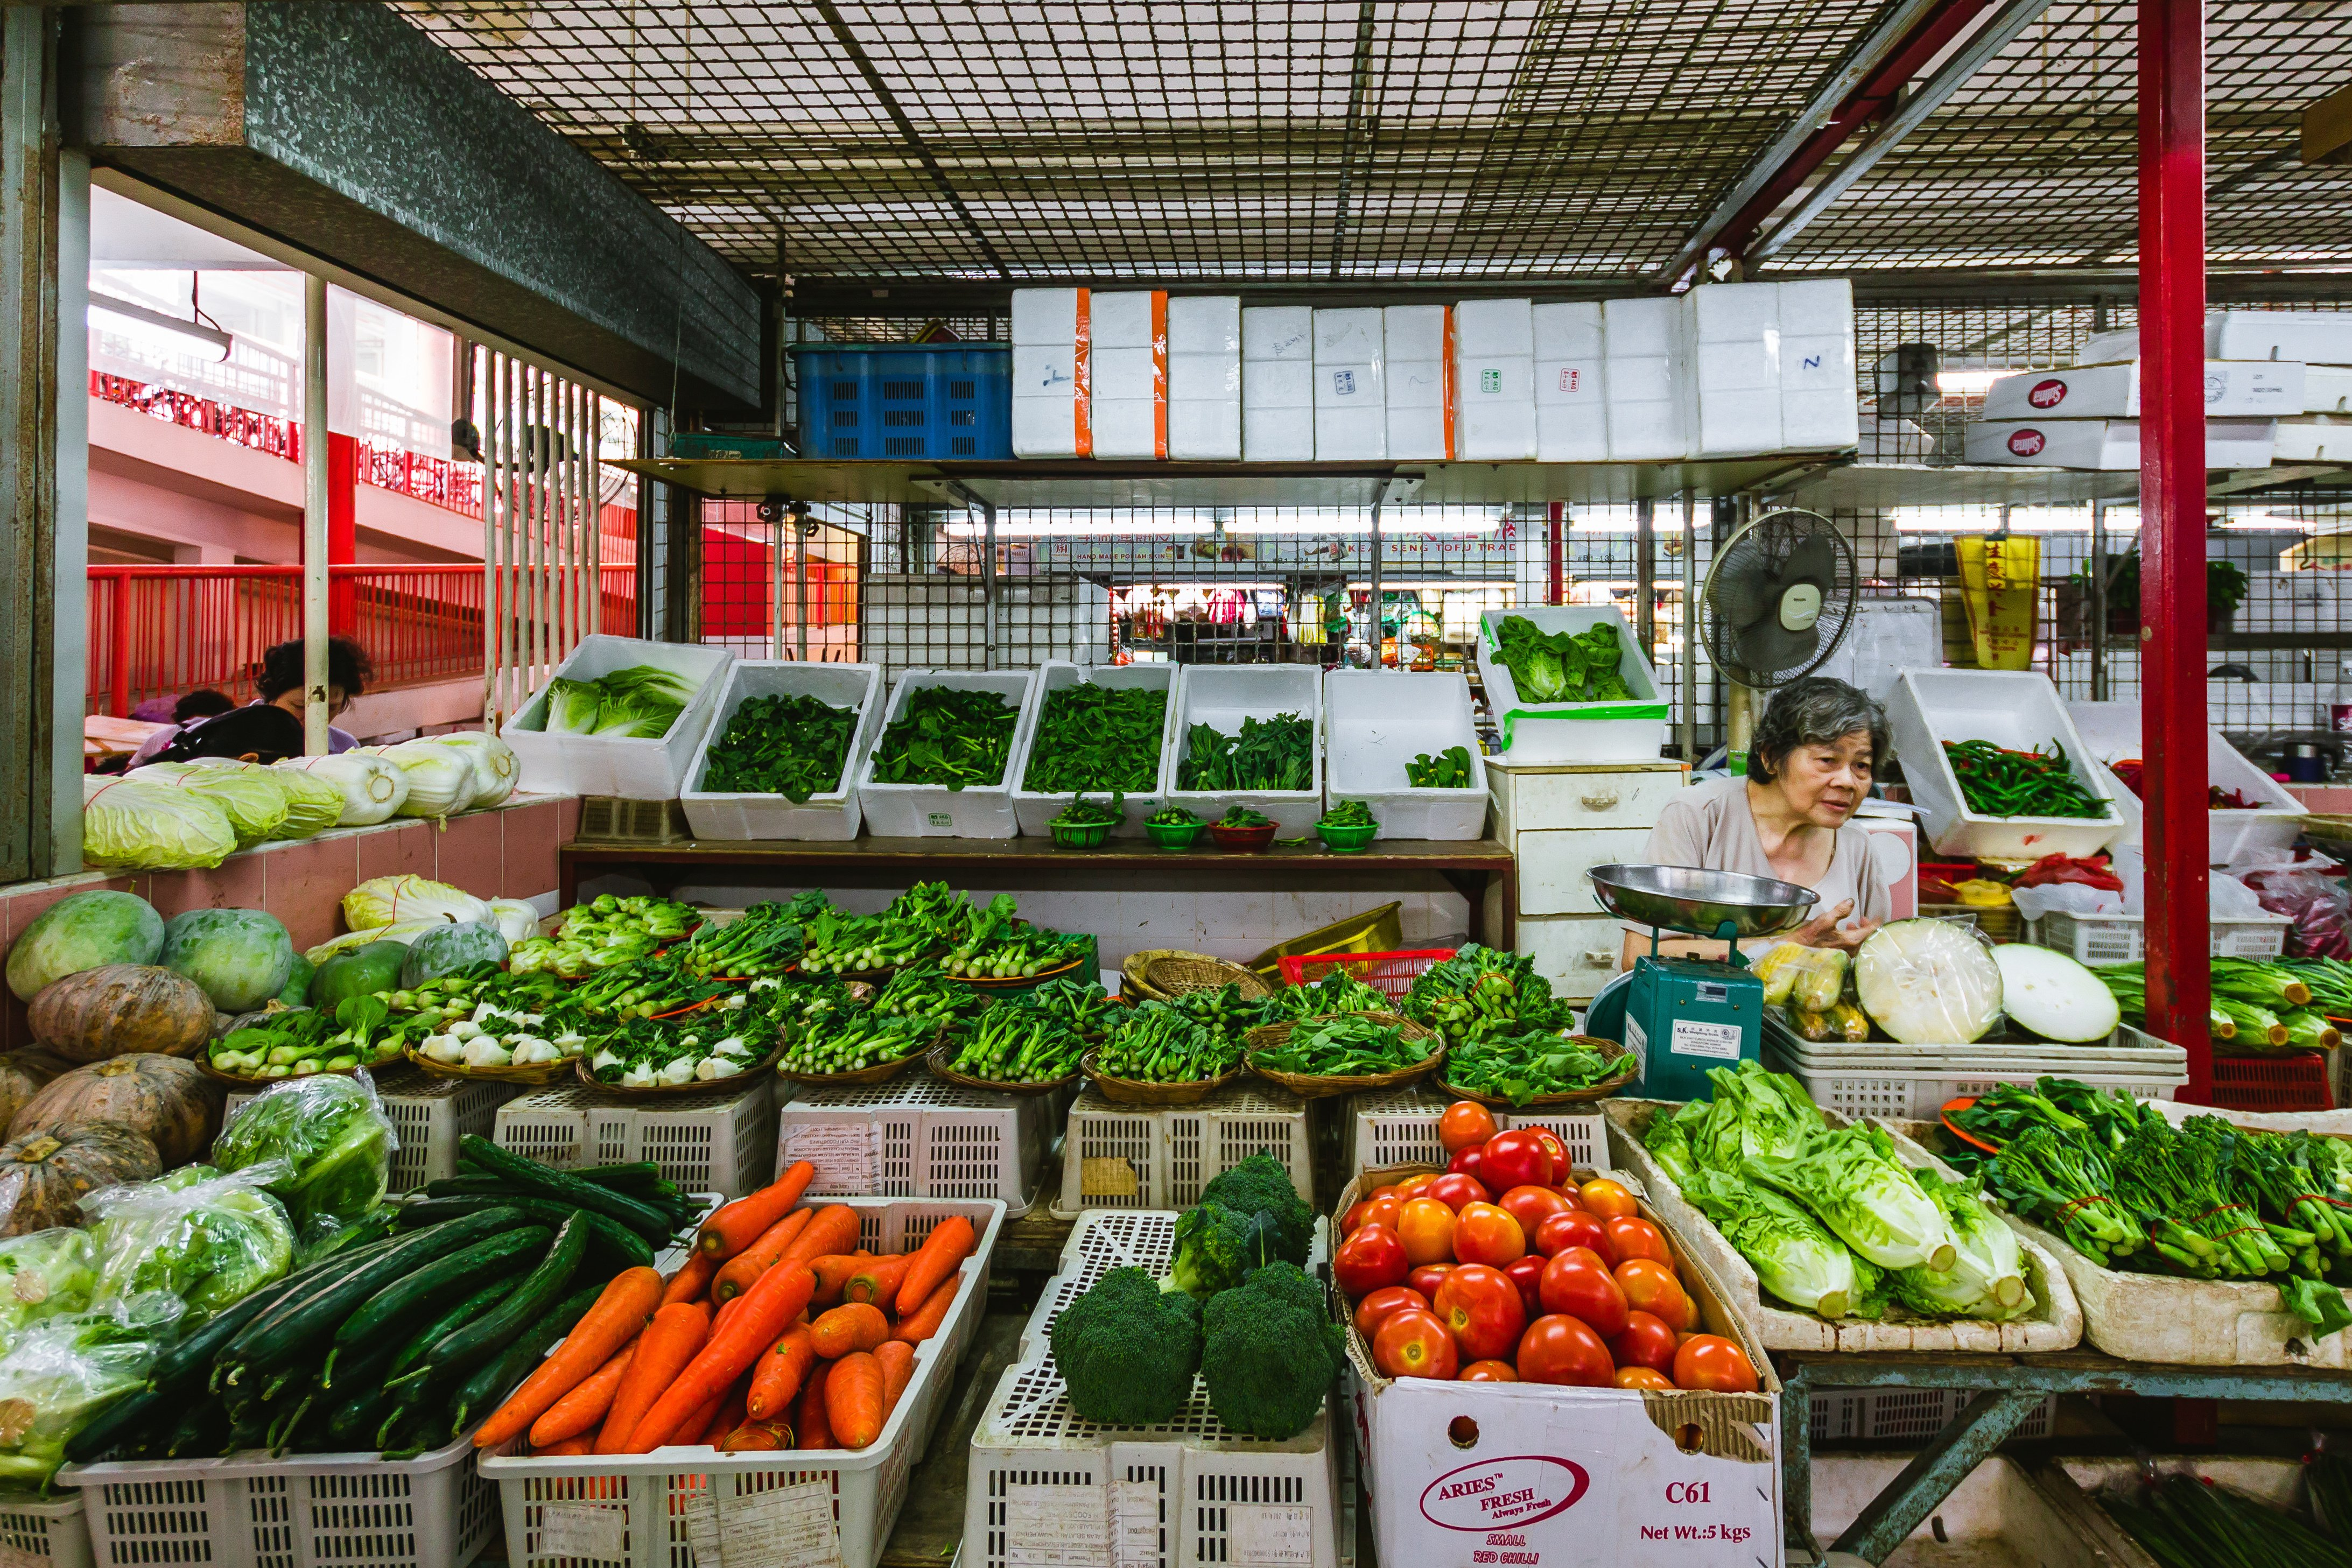 wet market stall in chinatown selling fresh vegetables